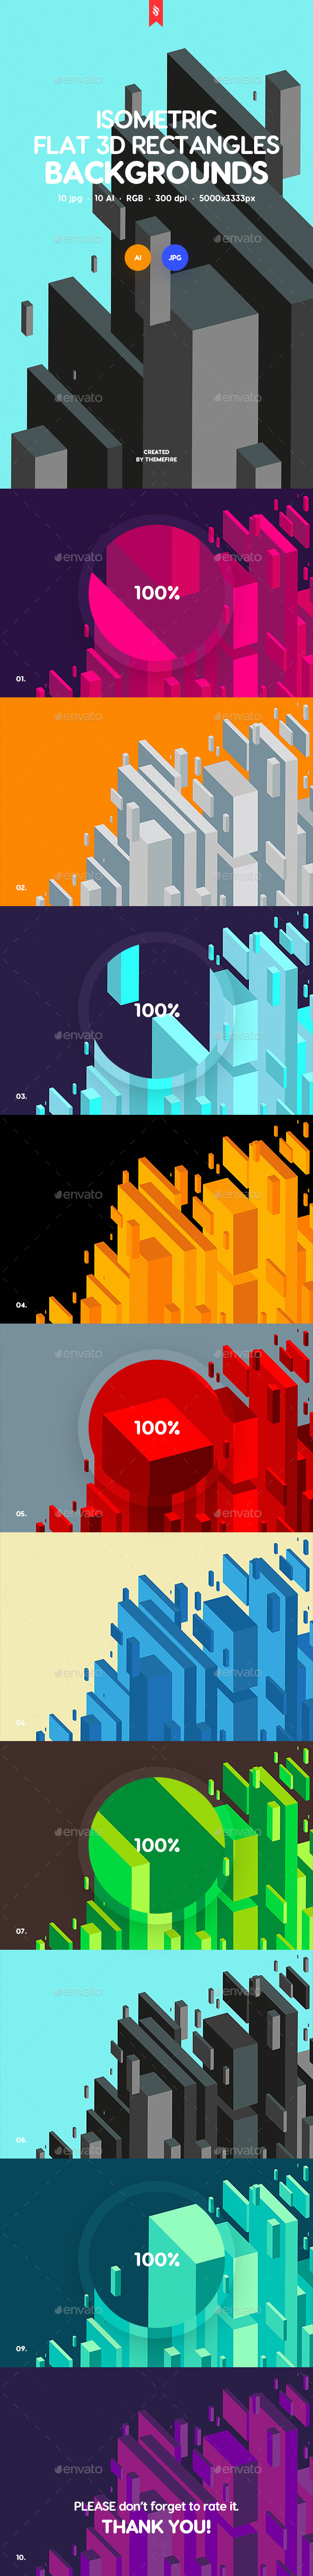 Isometric Flat 3D Rectangles Backgrounds - Abstract Backgrounds